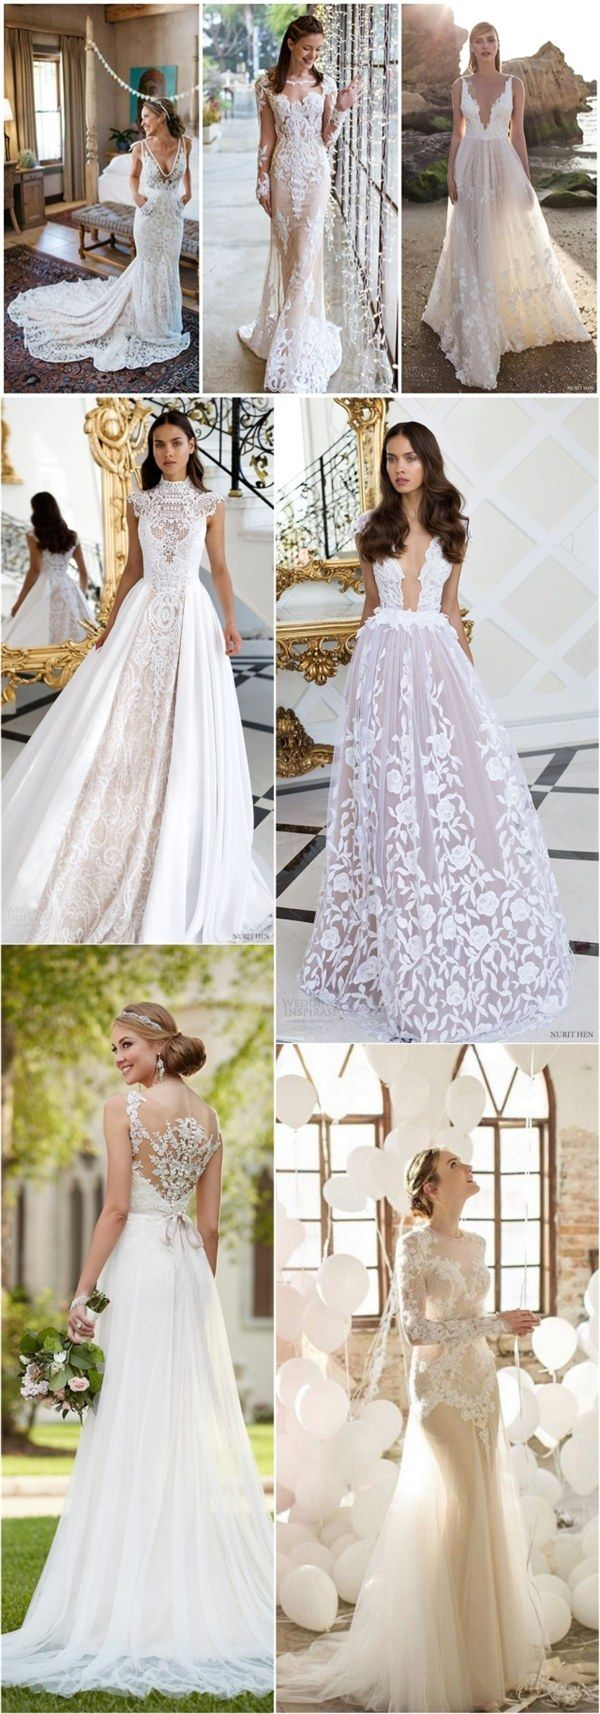 Vintage Lace Bridal Dresses and Wedding Gowns